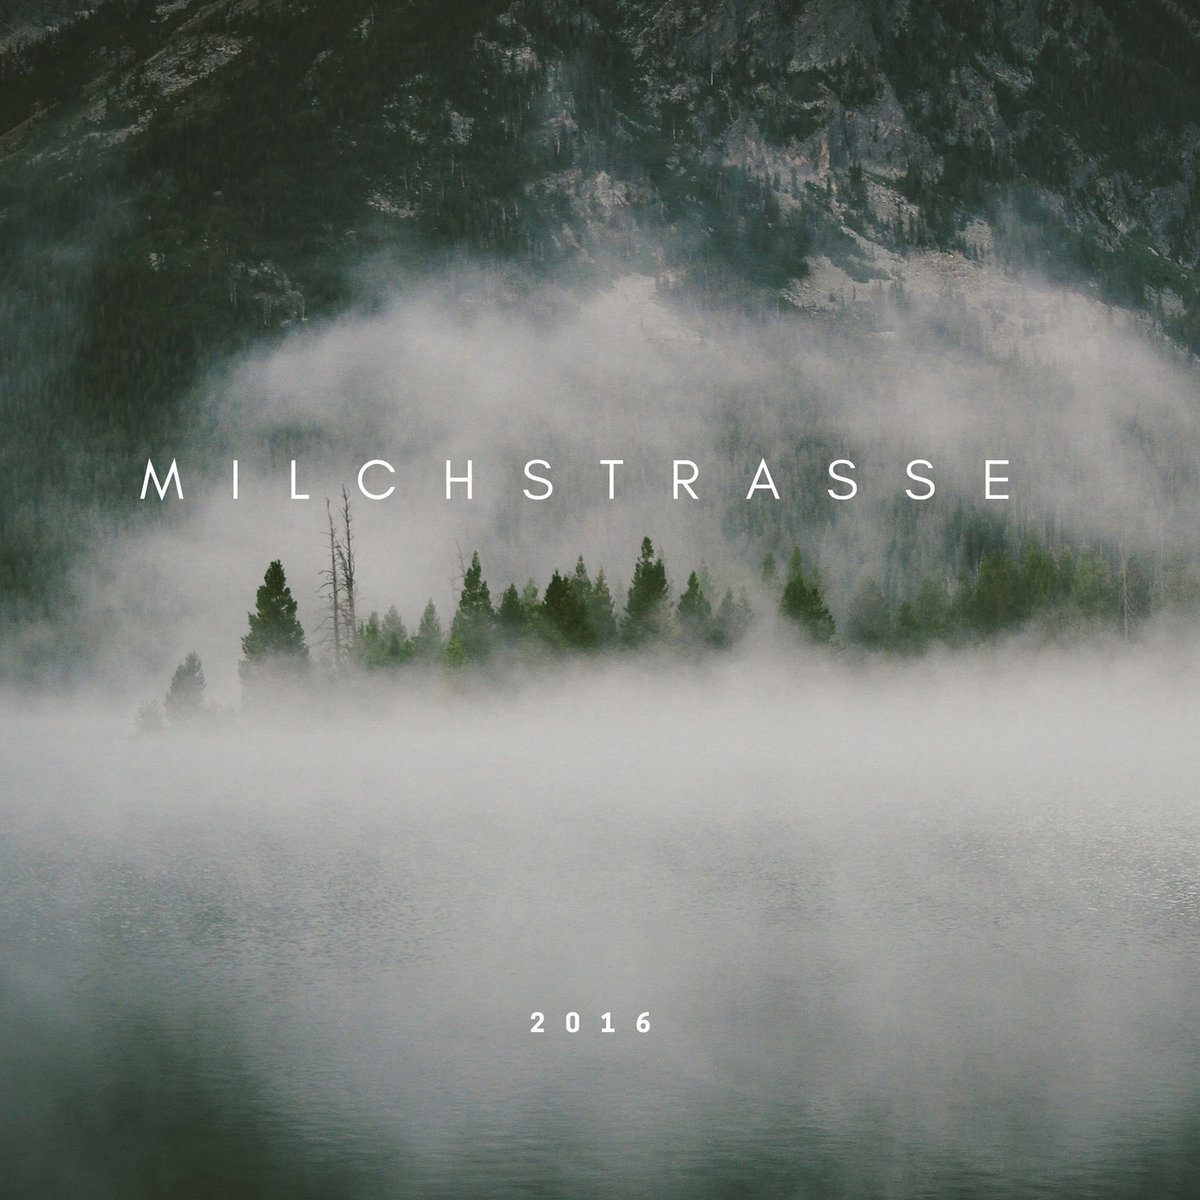 Milchstrasse – 2016 EP out now